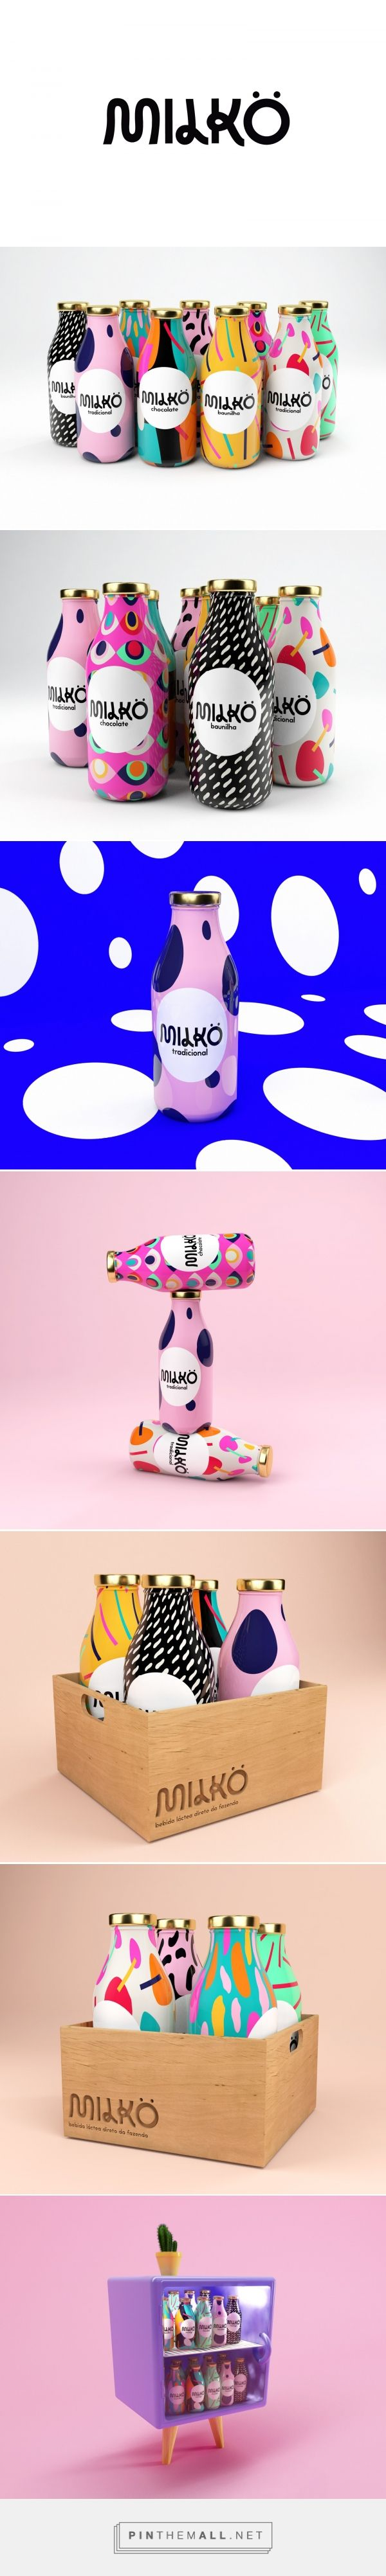 Milkö packaging design by Giovani Flores - http://www.packagingoftheworld.com/2017/01/milko.html